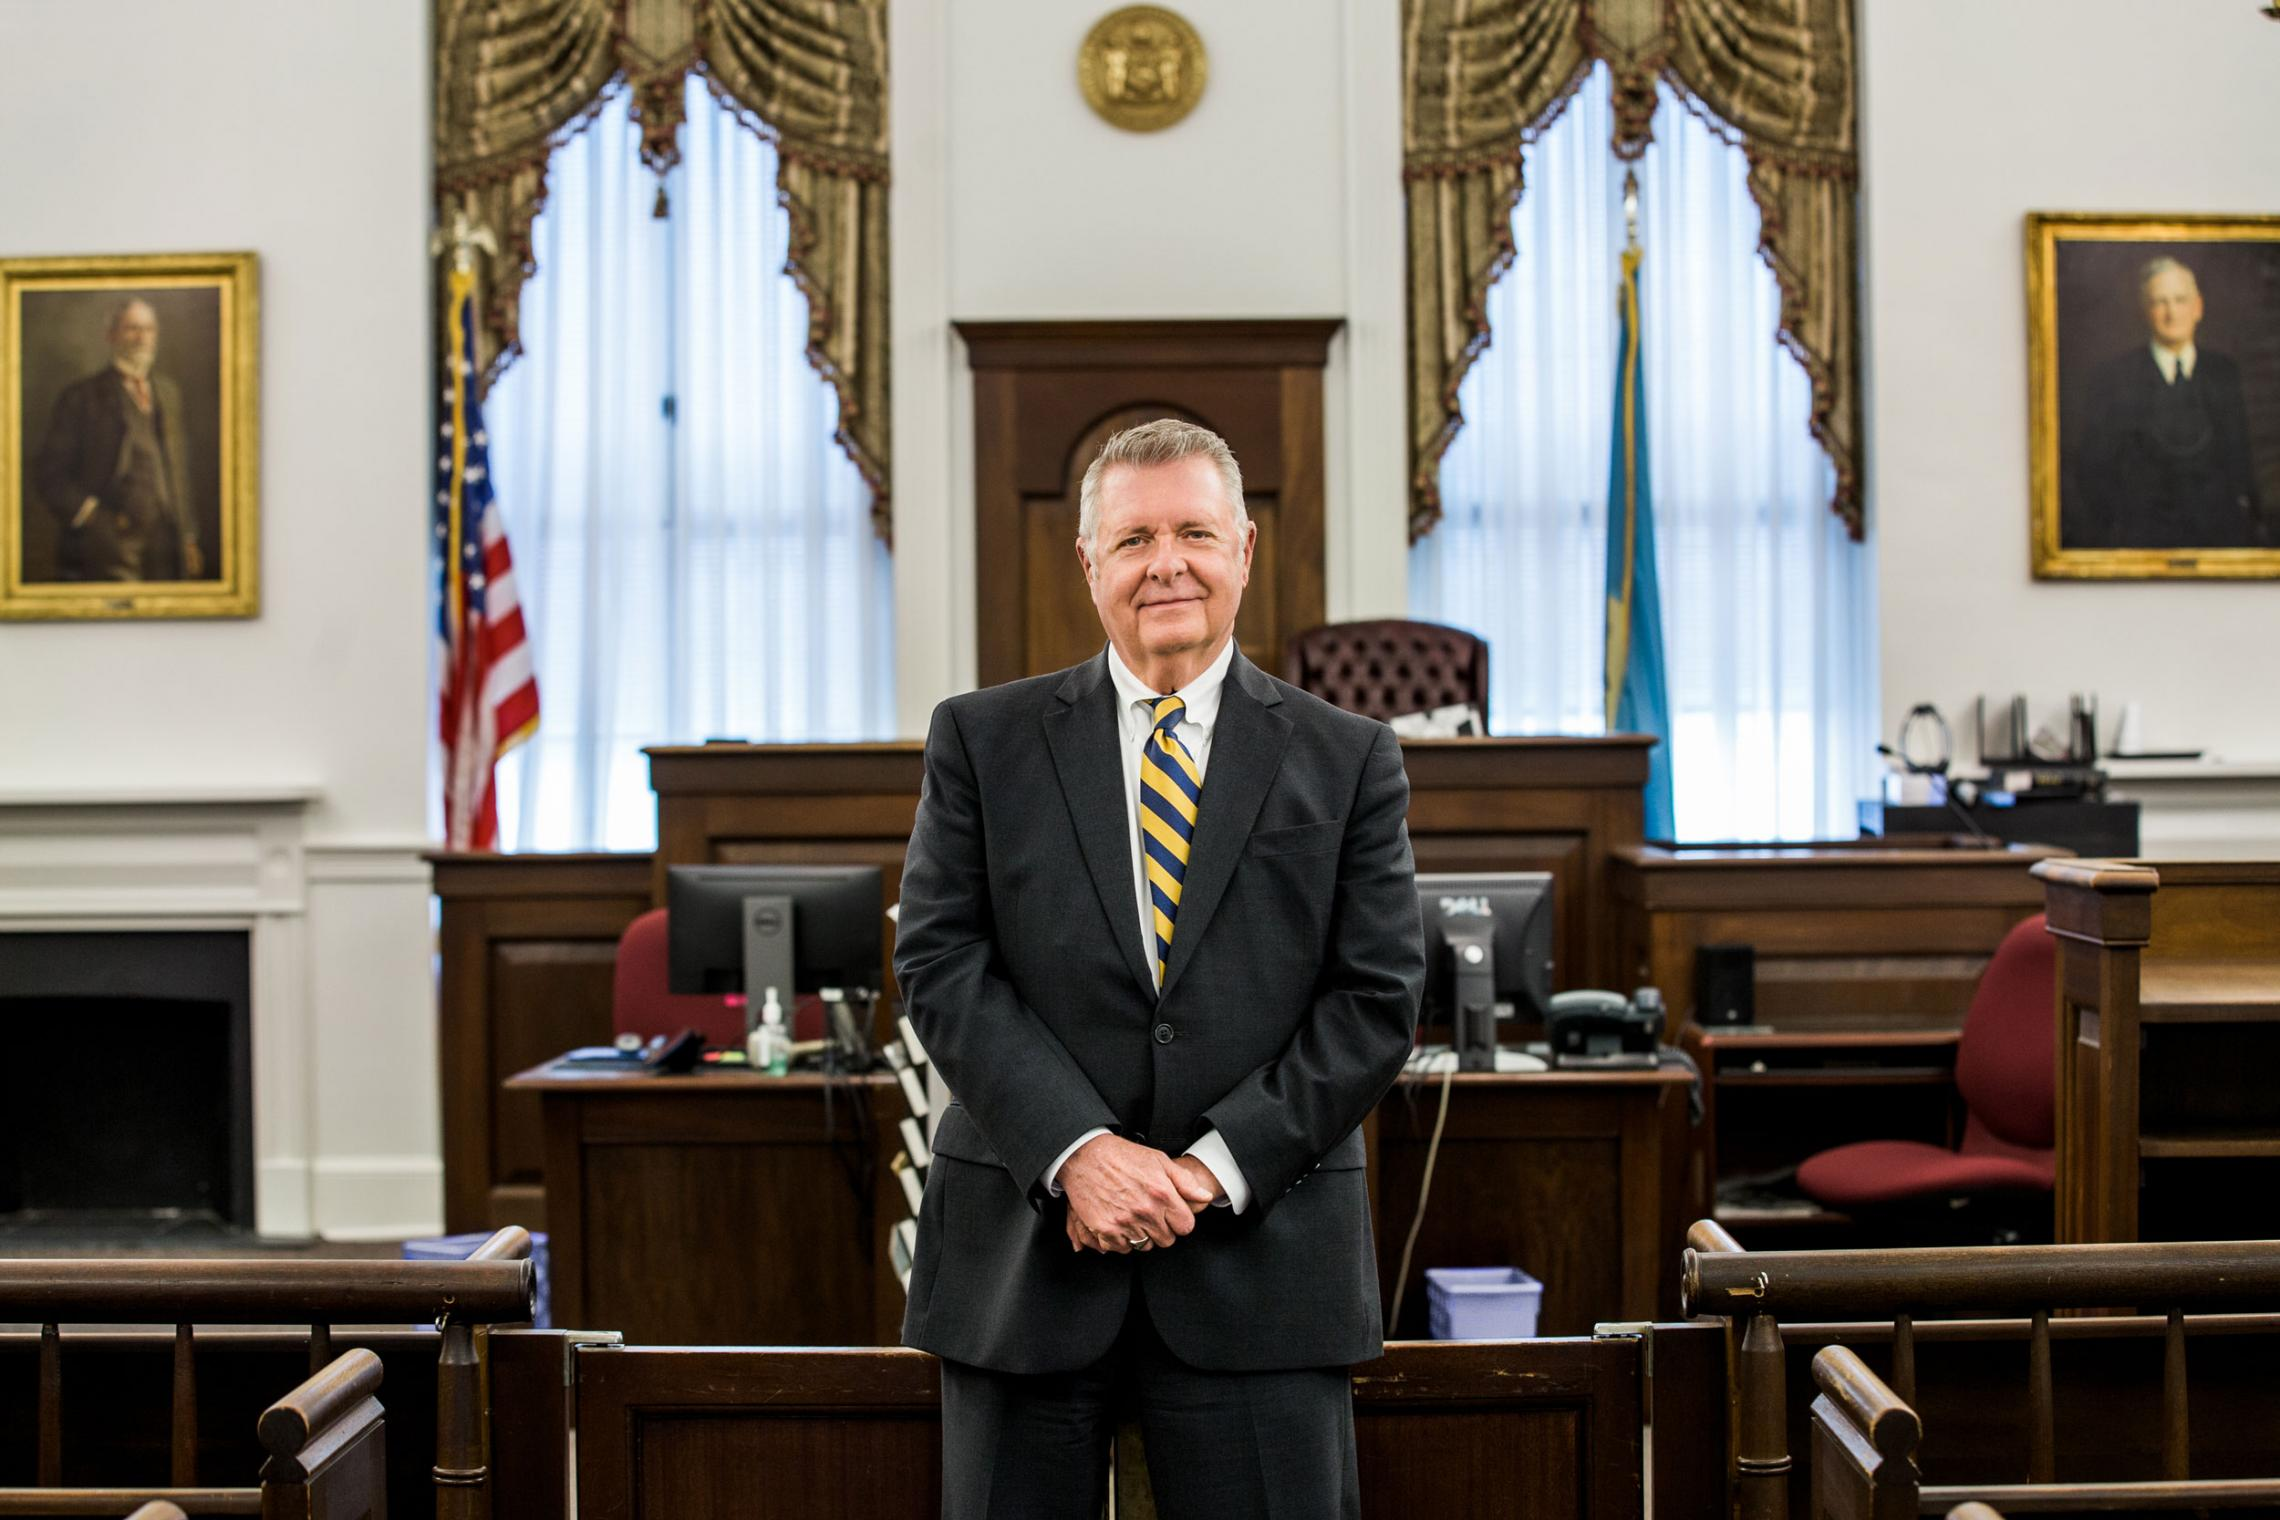 1973 graduate Paul Hurdle, who turned 71 in March, works as a judicial law clerk at the Superior Court of Delaware.